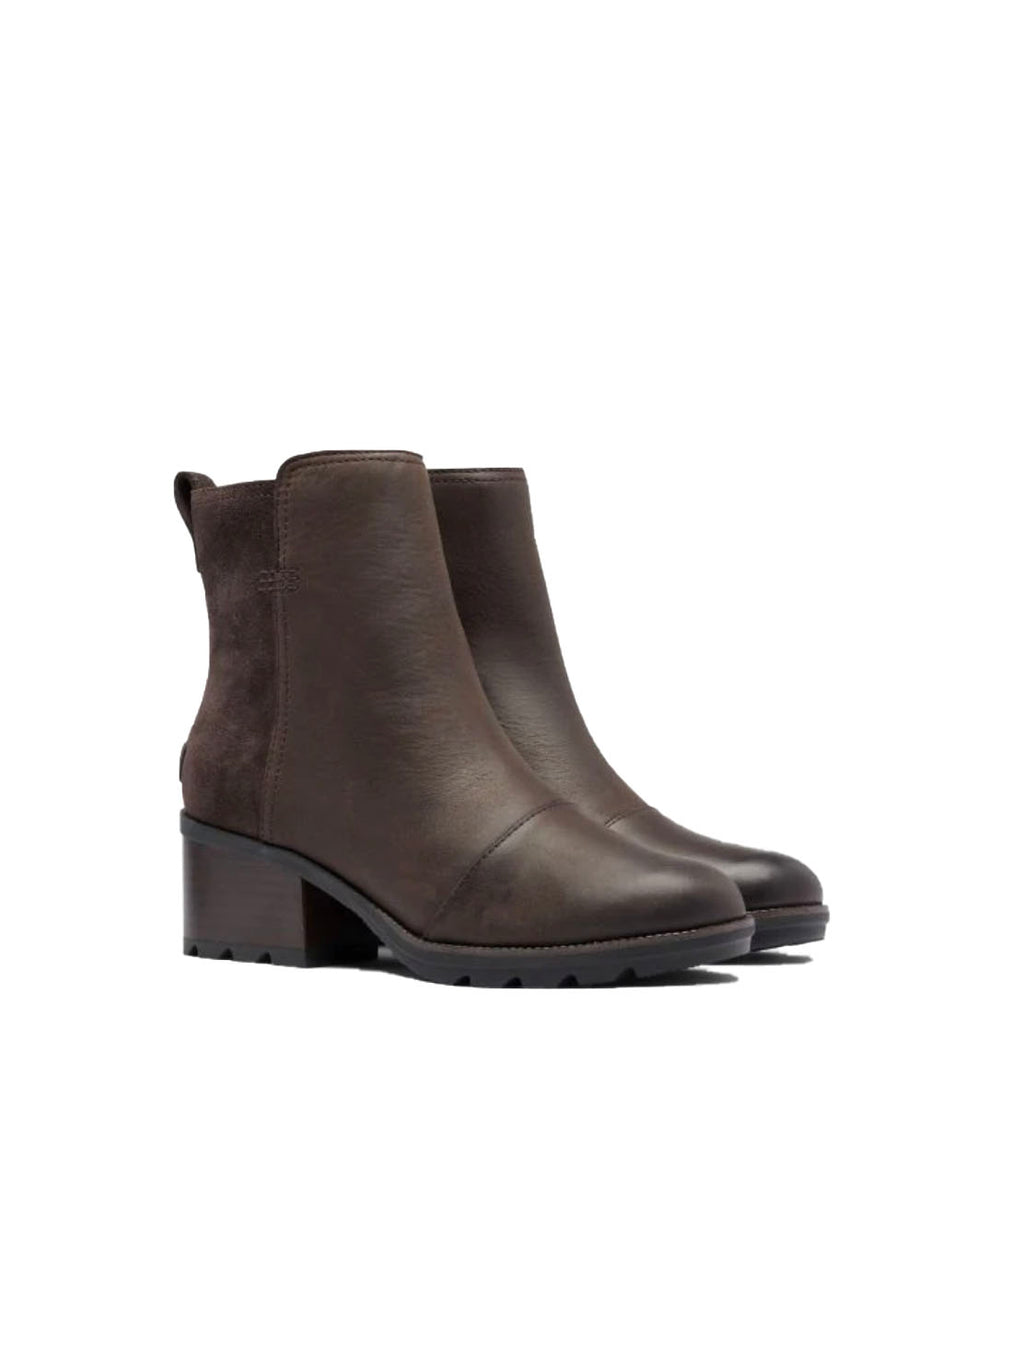 Sorel Cate Bootie in Blackened Brown